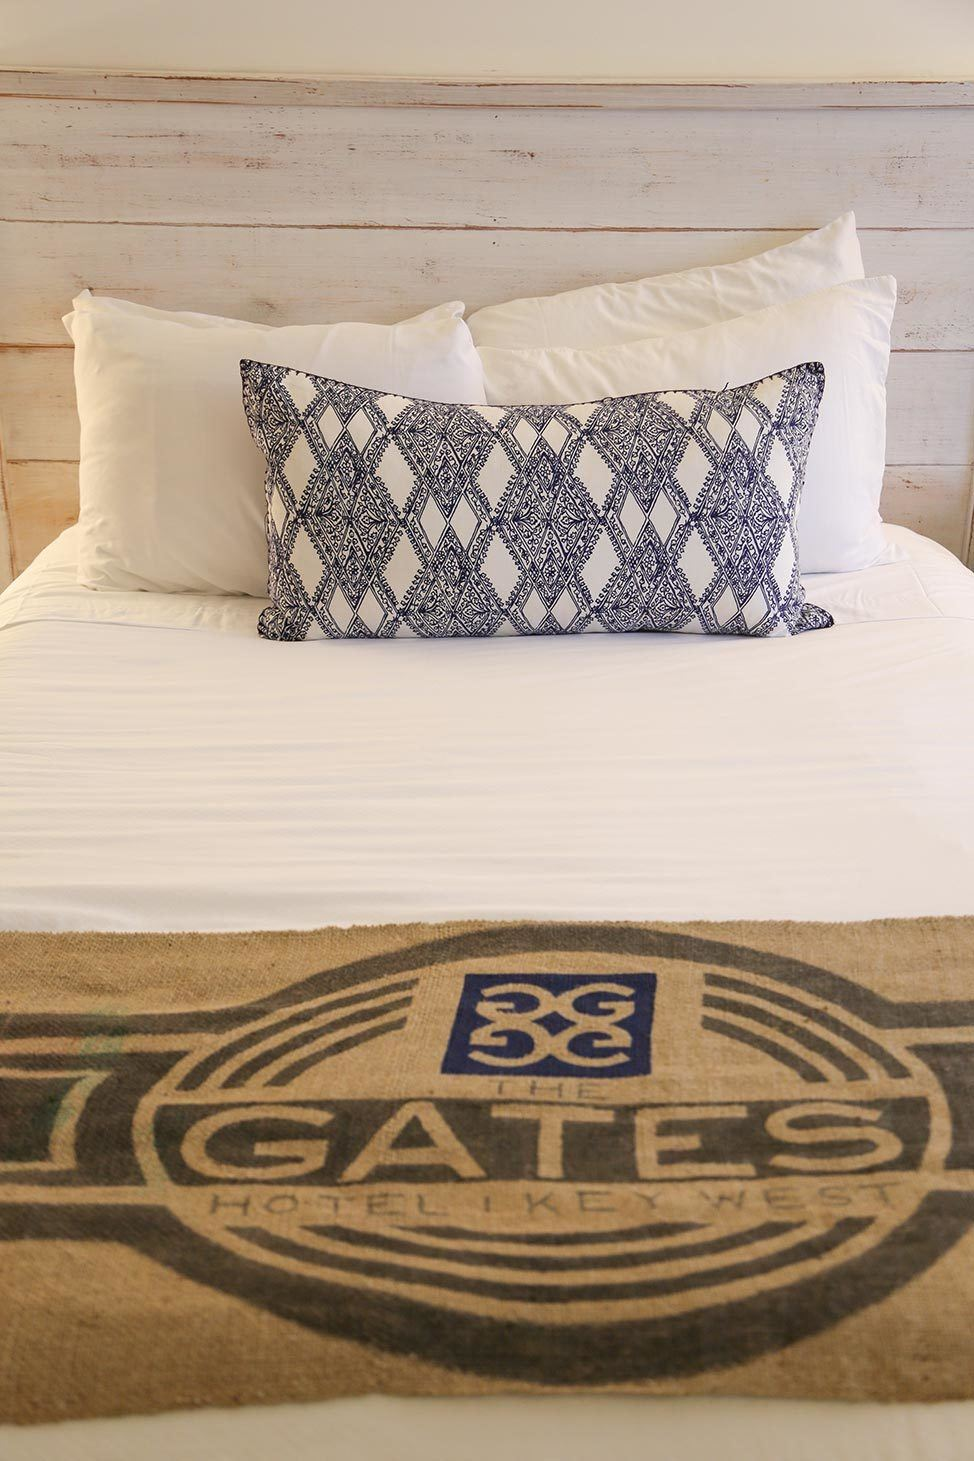 Rooms at The Gates Hotel Key West